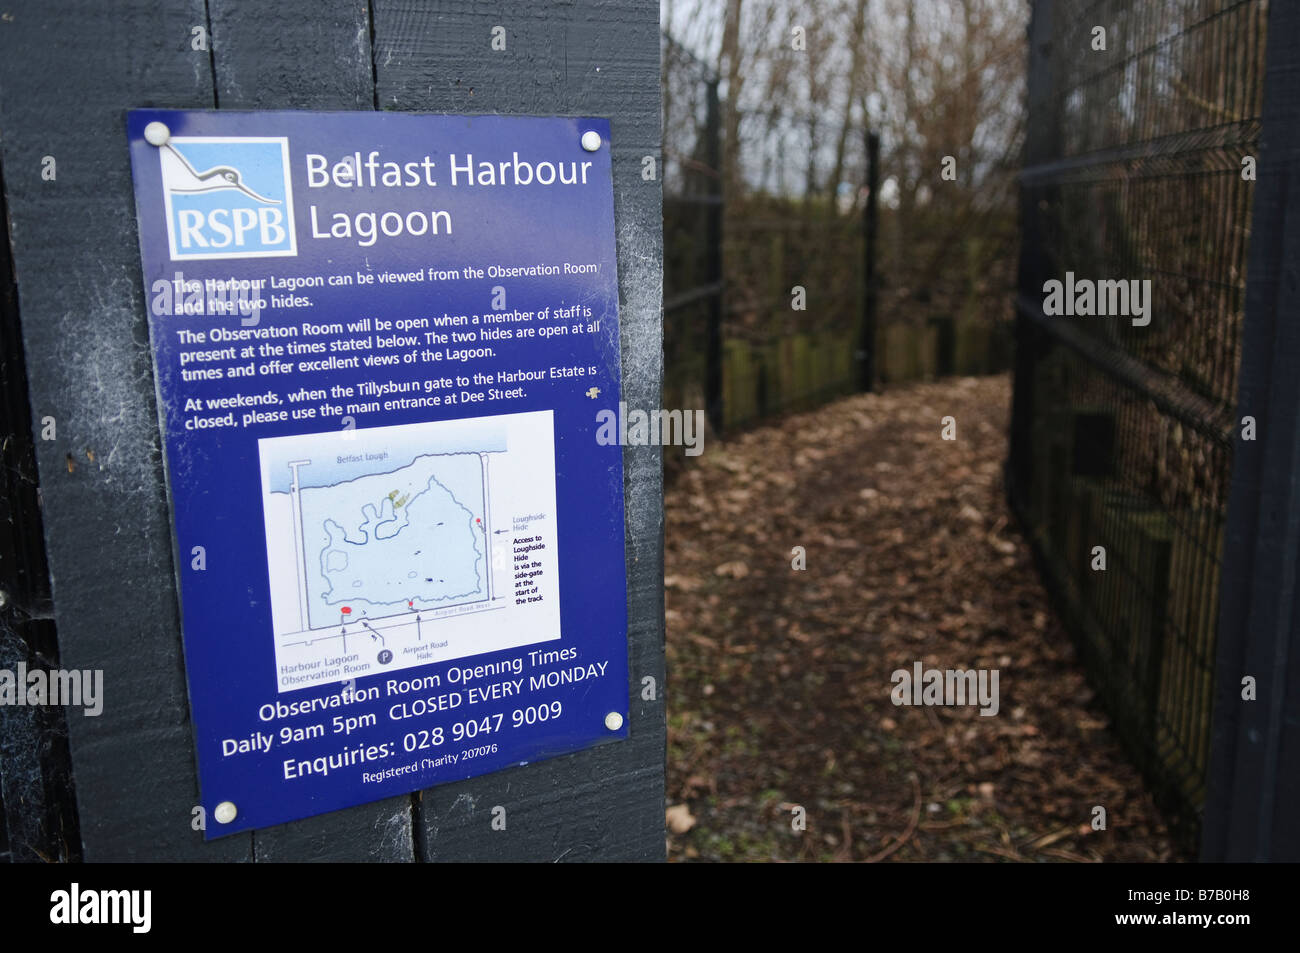 Sign at entrance to bird hide at the RSPB Reserve, Belfast Lagoon at Belfast Lough. - Stock Image